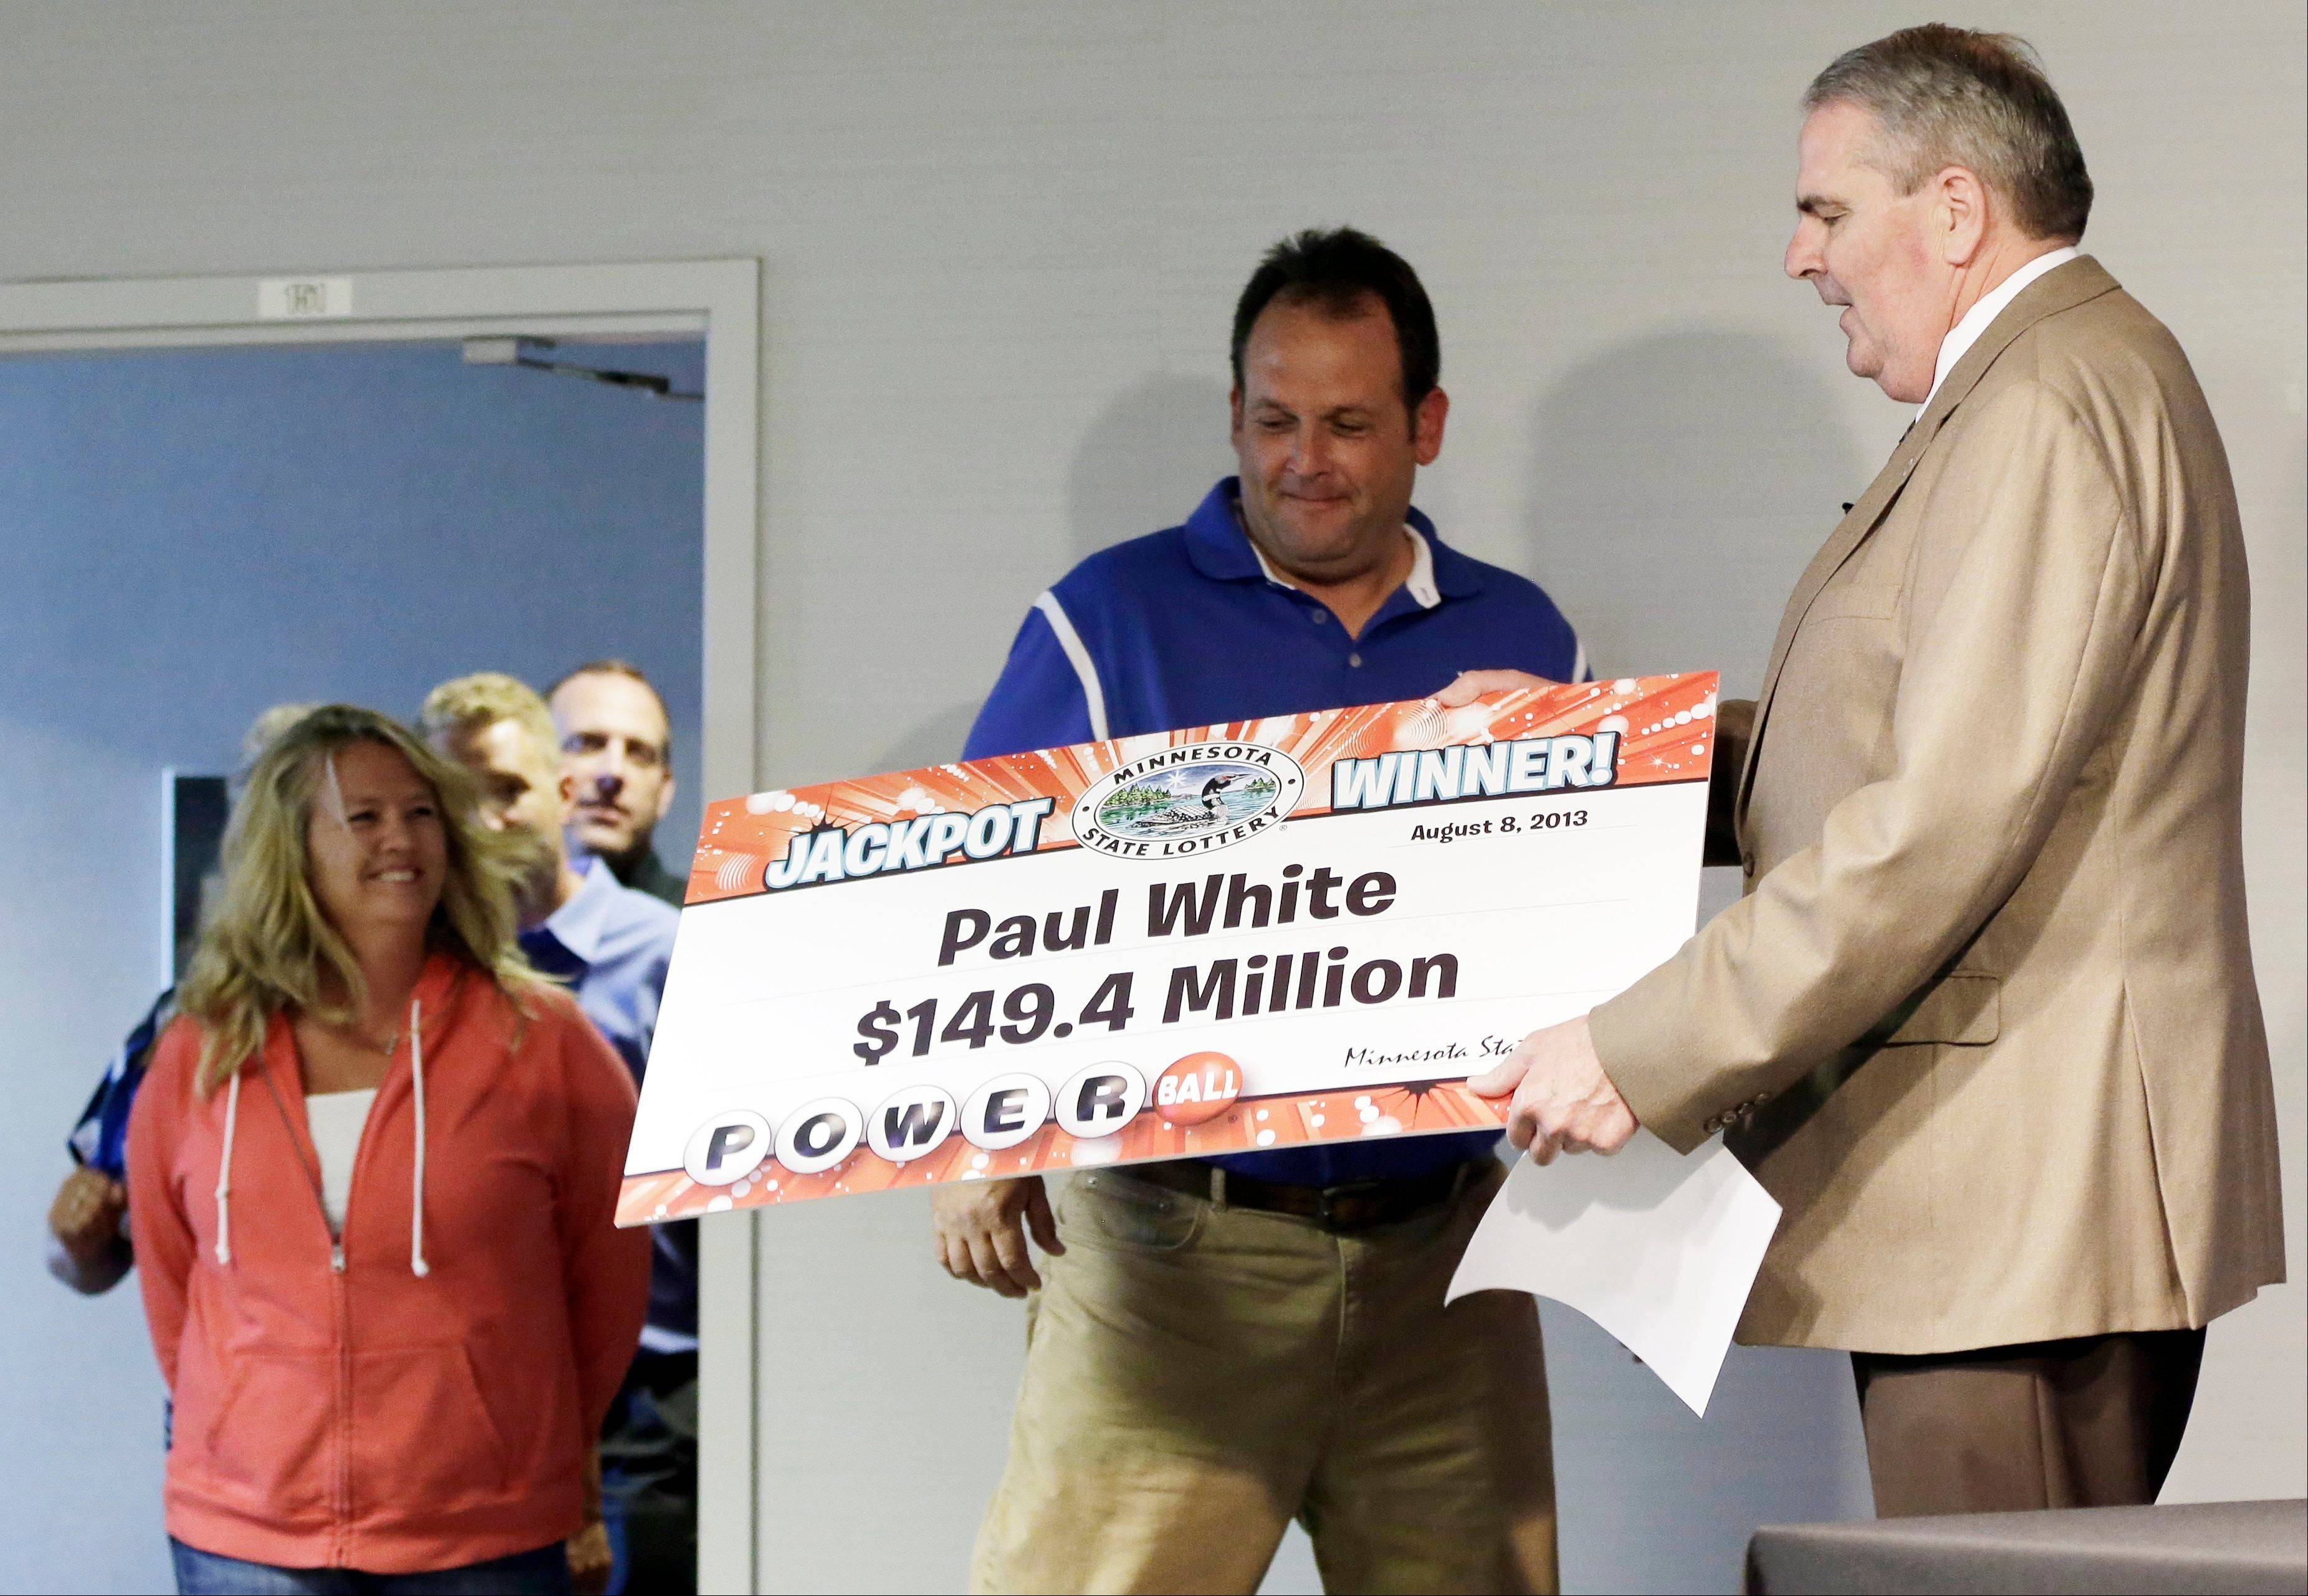 Paul White, of Ham Lake, Minn., is one of the winners of the $448.4 million Powerball Jackpot, Thursday, Aug. 8, 2013 in Minneapolis. White's share of the jackpot is $149.4 million. At rear left is White's girlfriend, Kim VanReese.